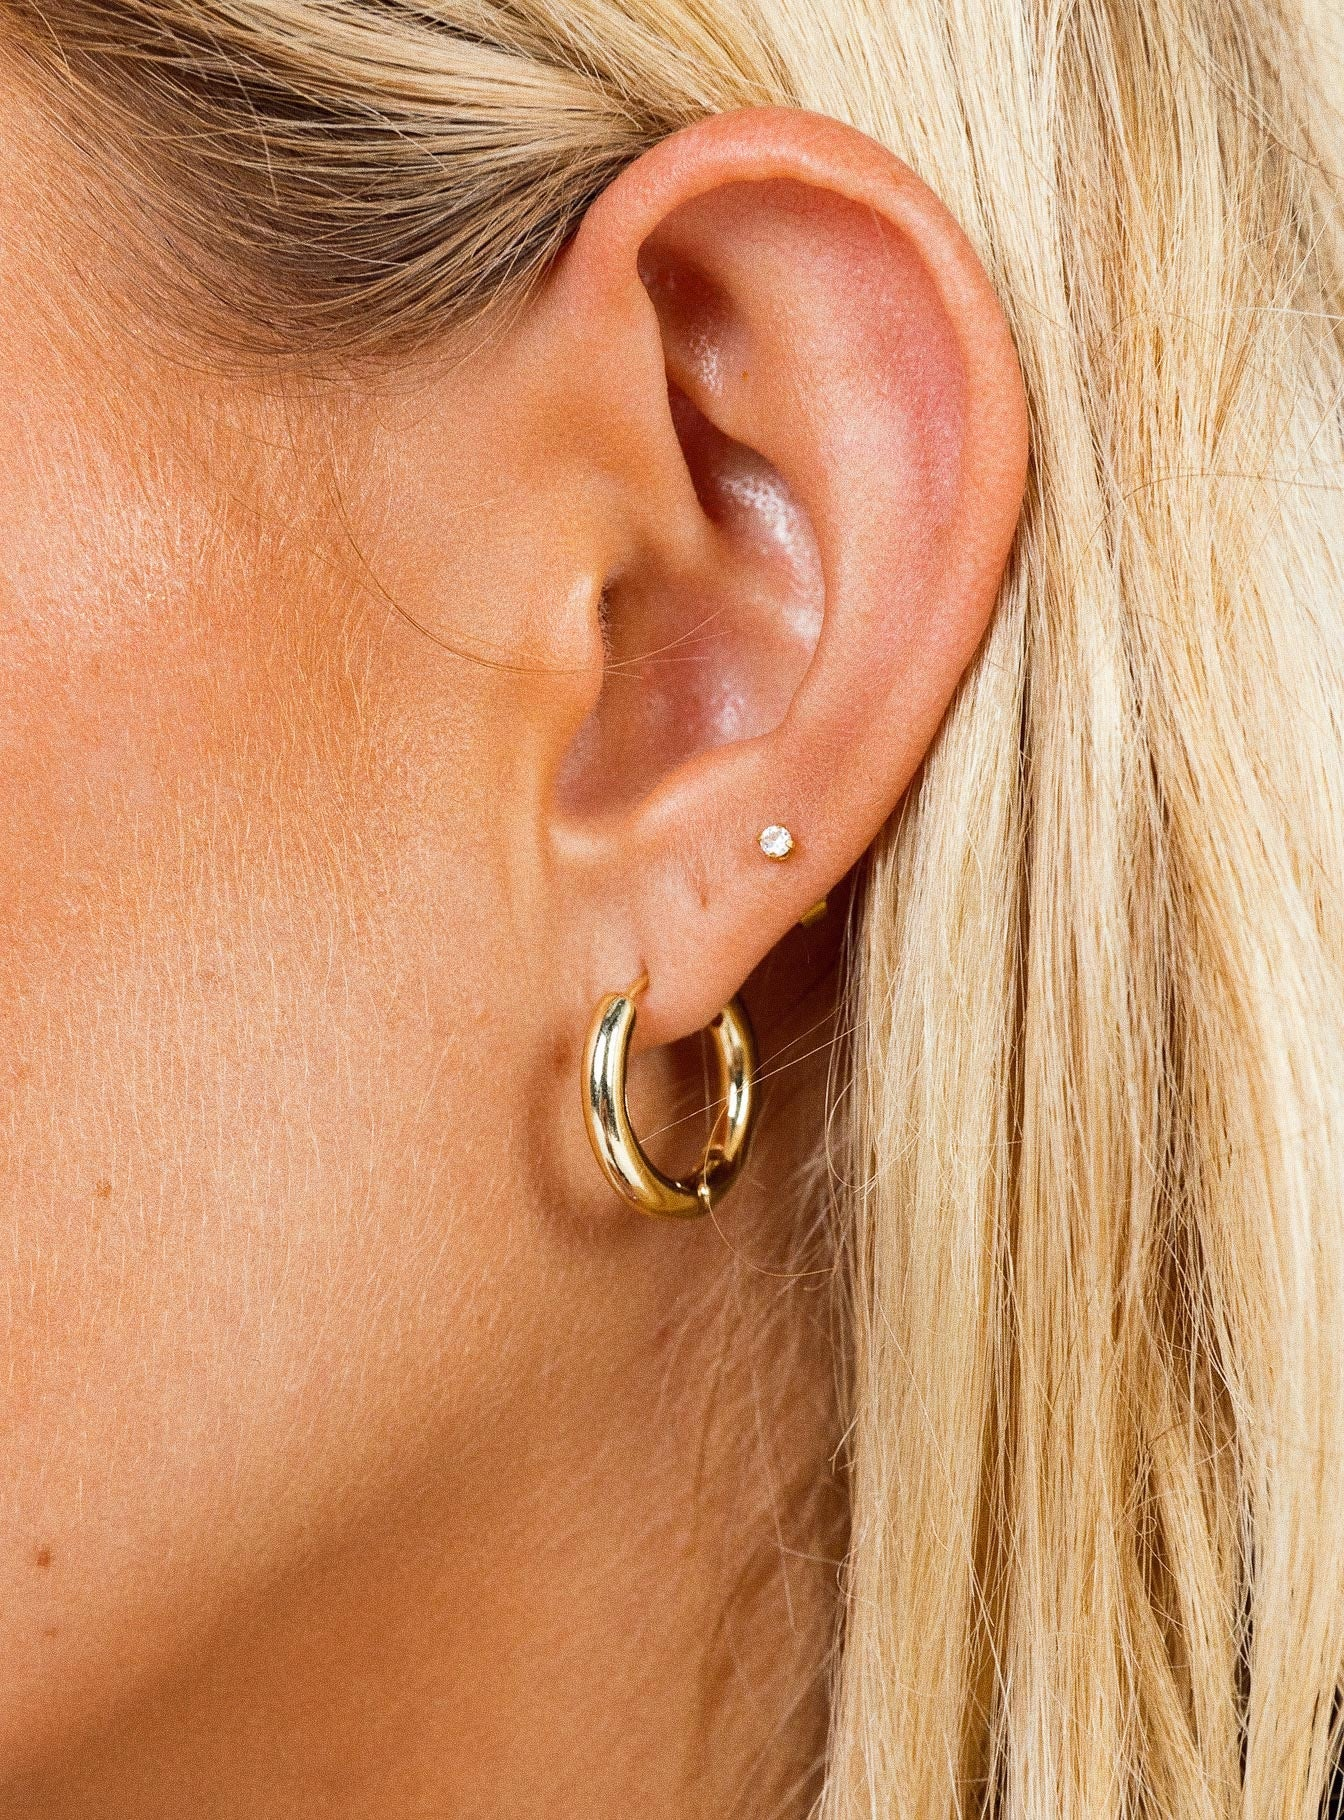 The Classic Hoop Earrings